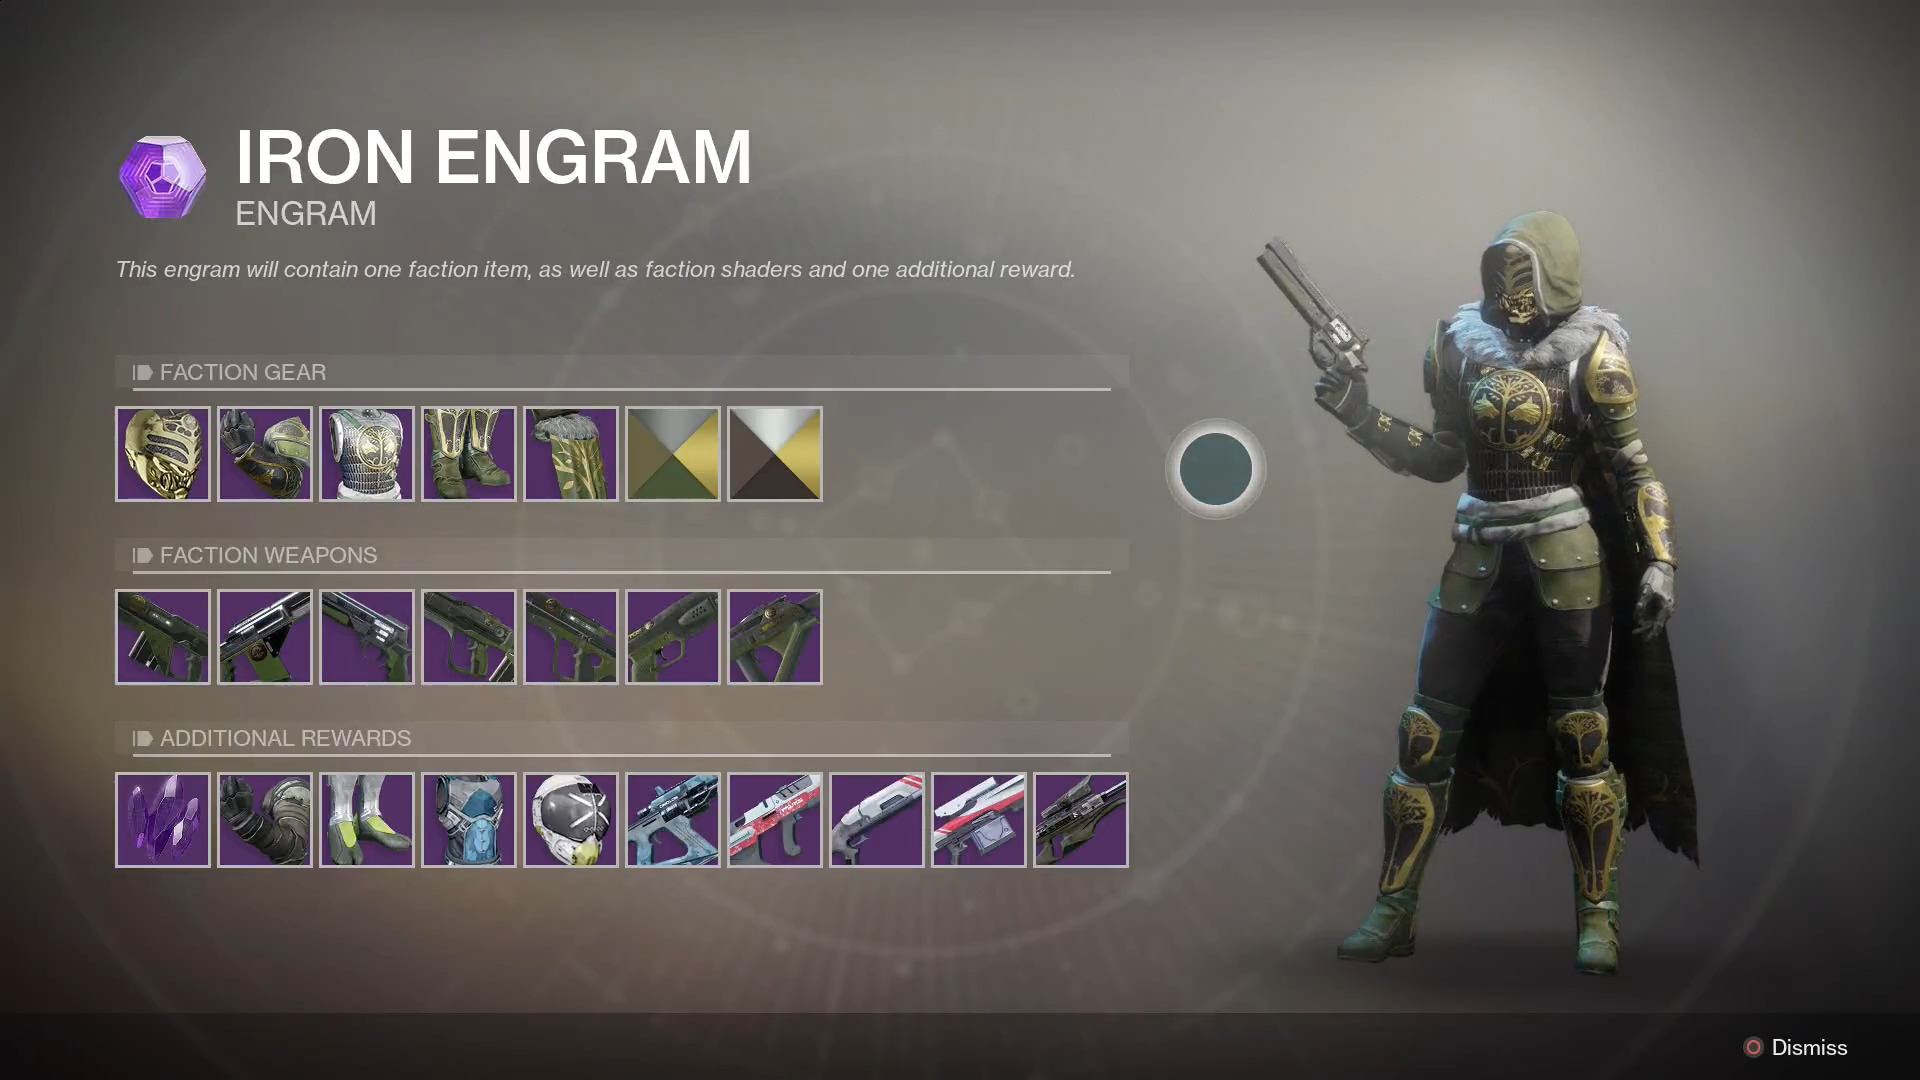 The New Iron Banner Event For Destiny 2 Has Landed And In Exchange Participation You Can Earn A Whole Bunch Of Armor Pieces Shaders Weapons